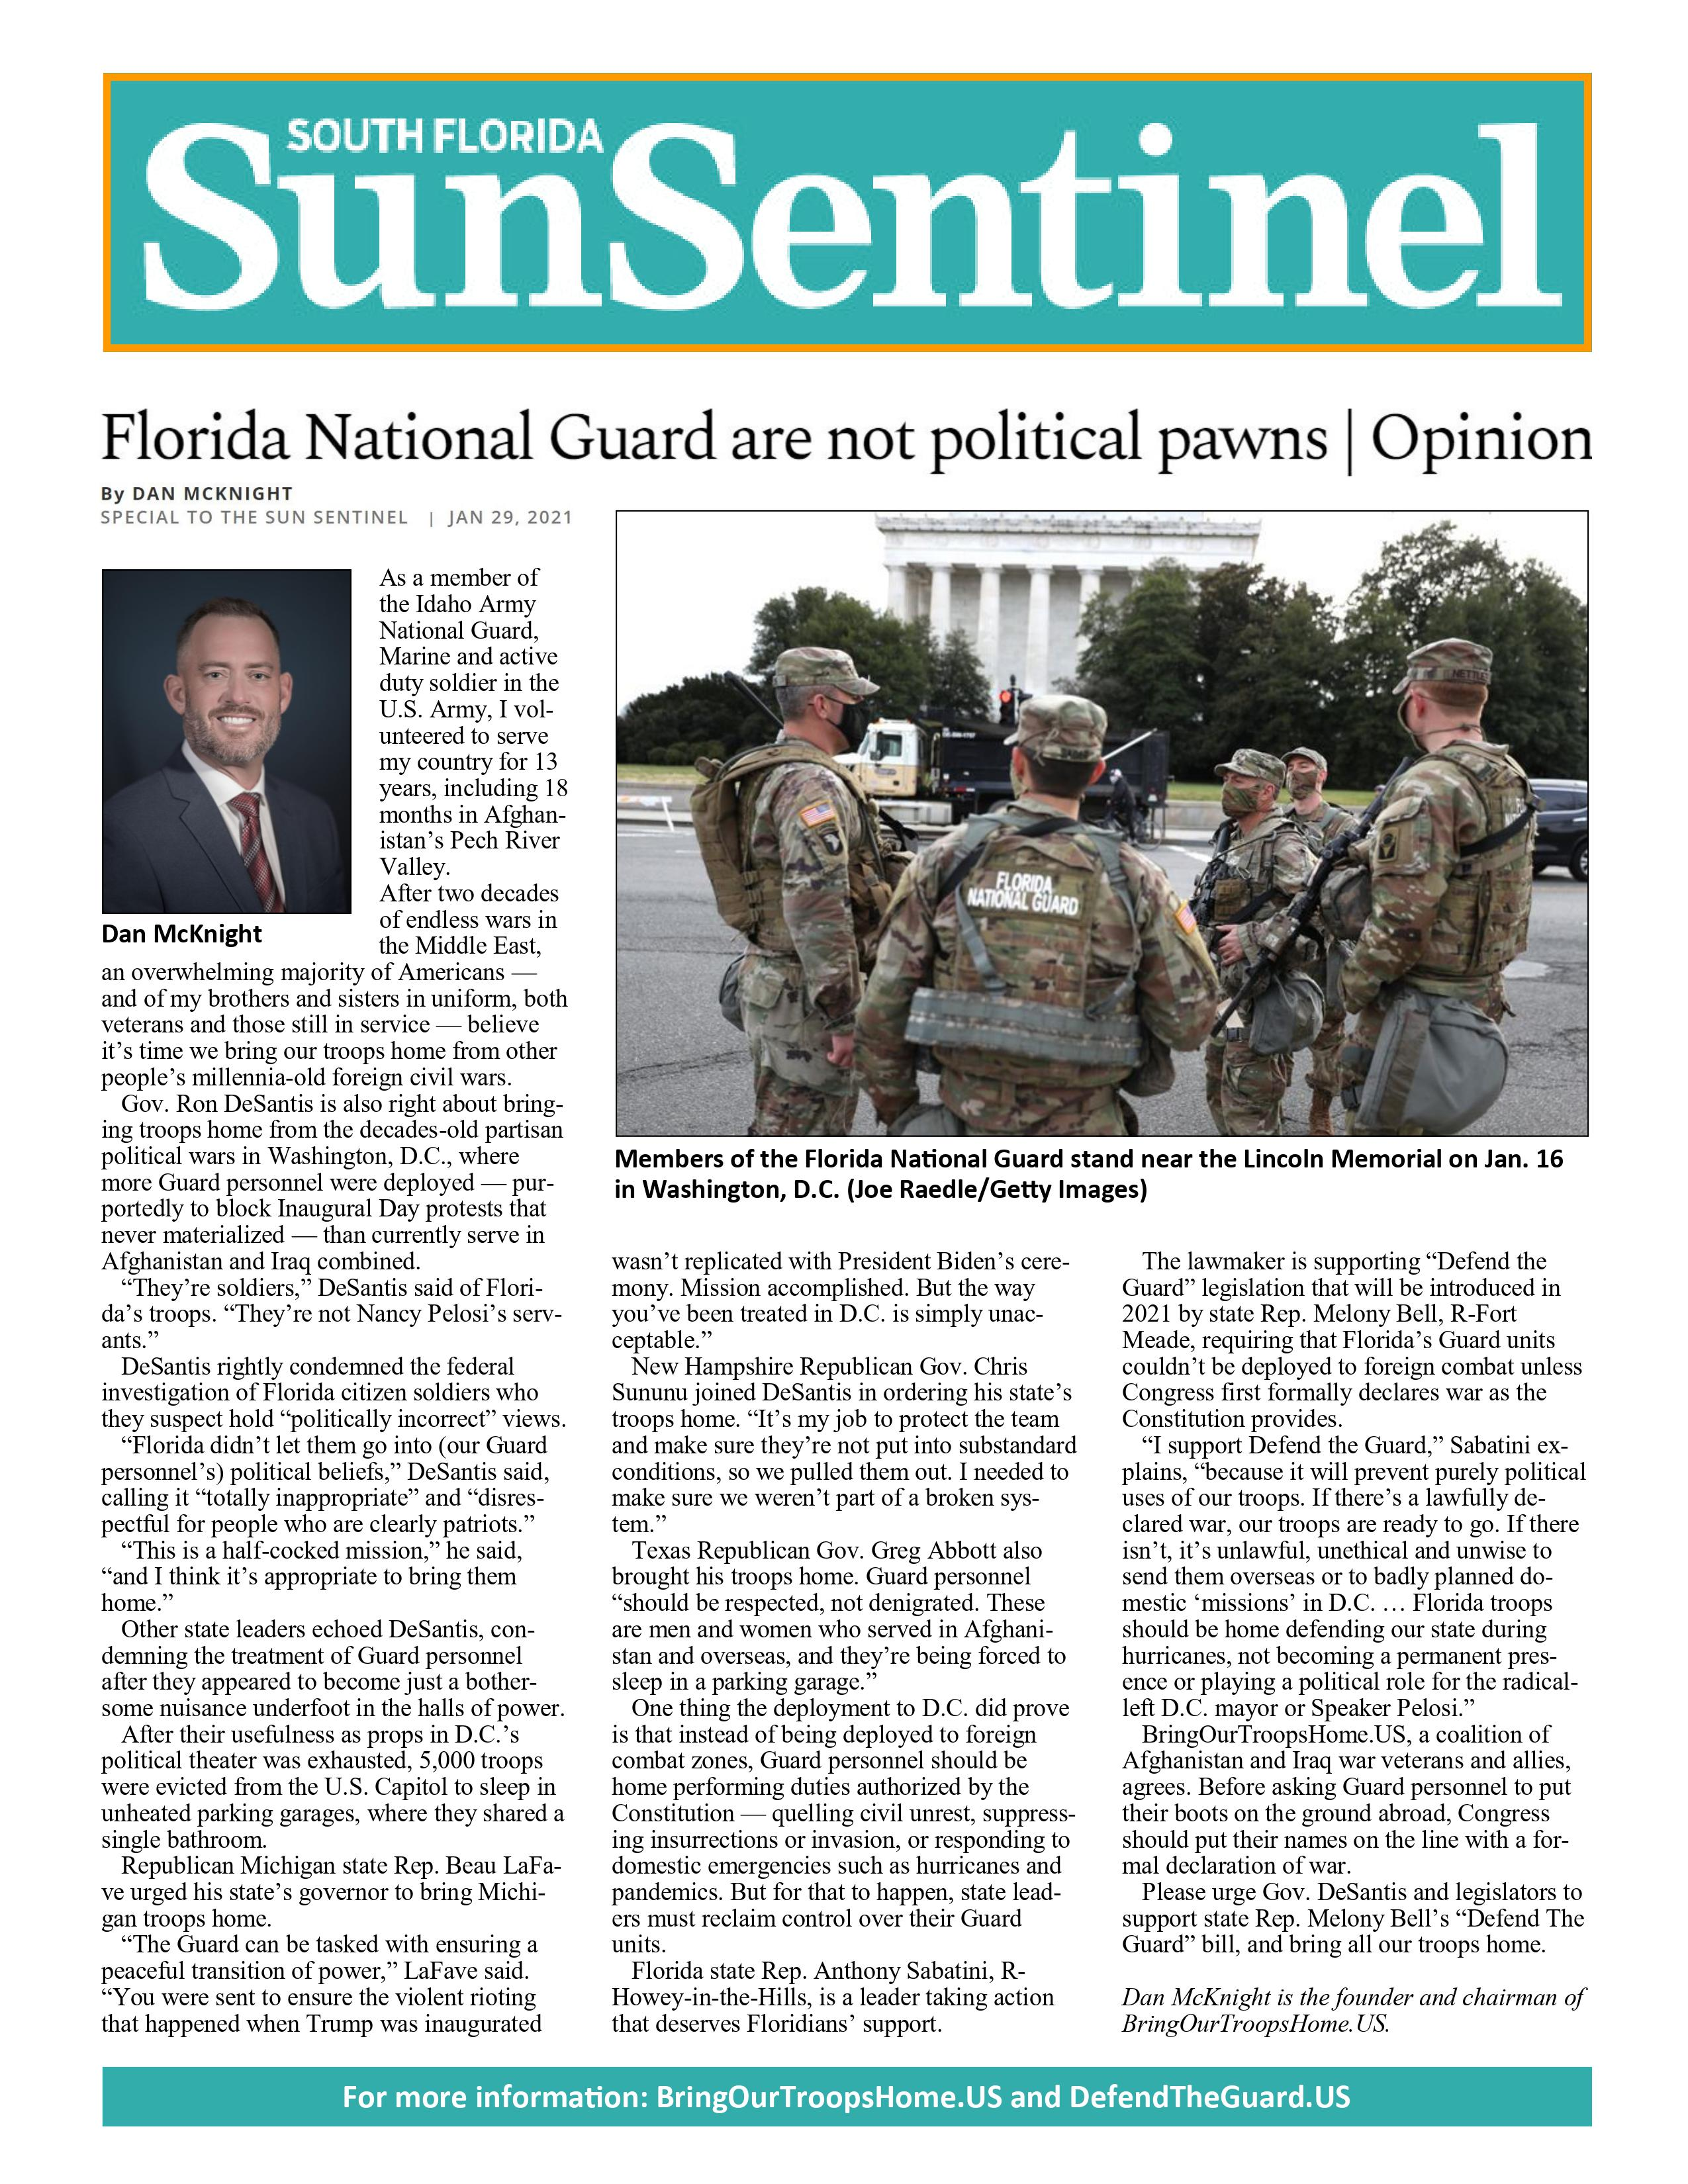 Florida National Guard Are Not Political Pawns